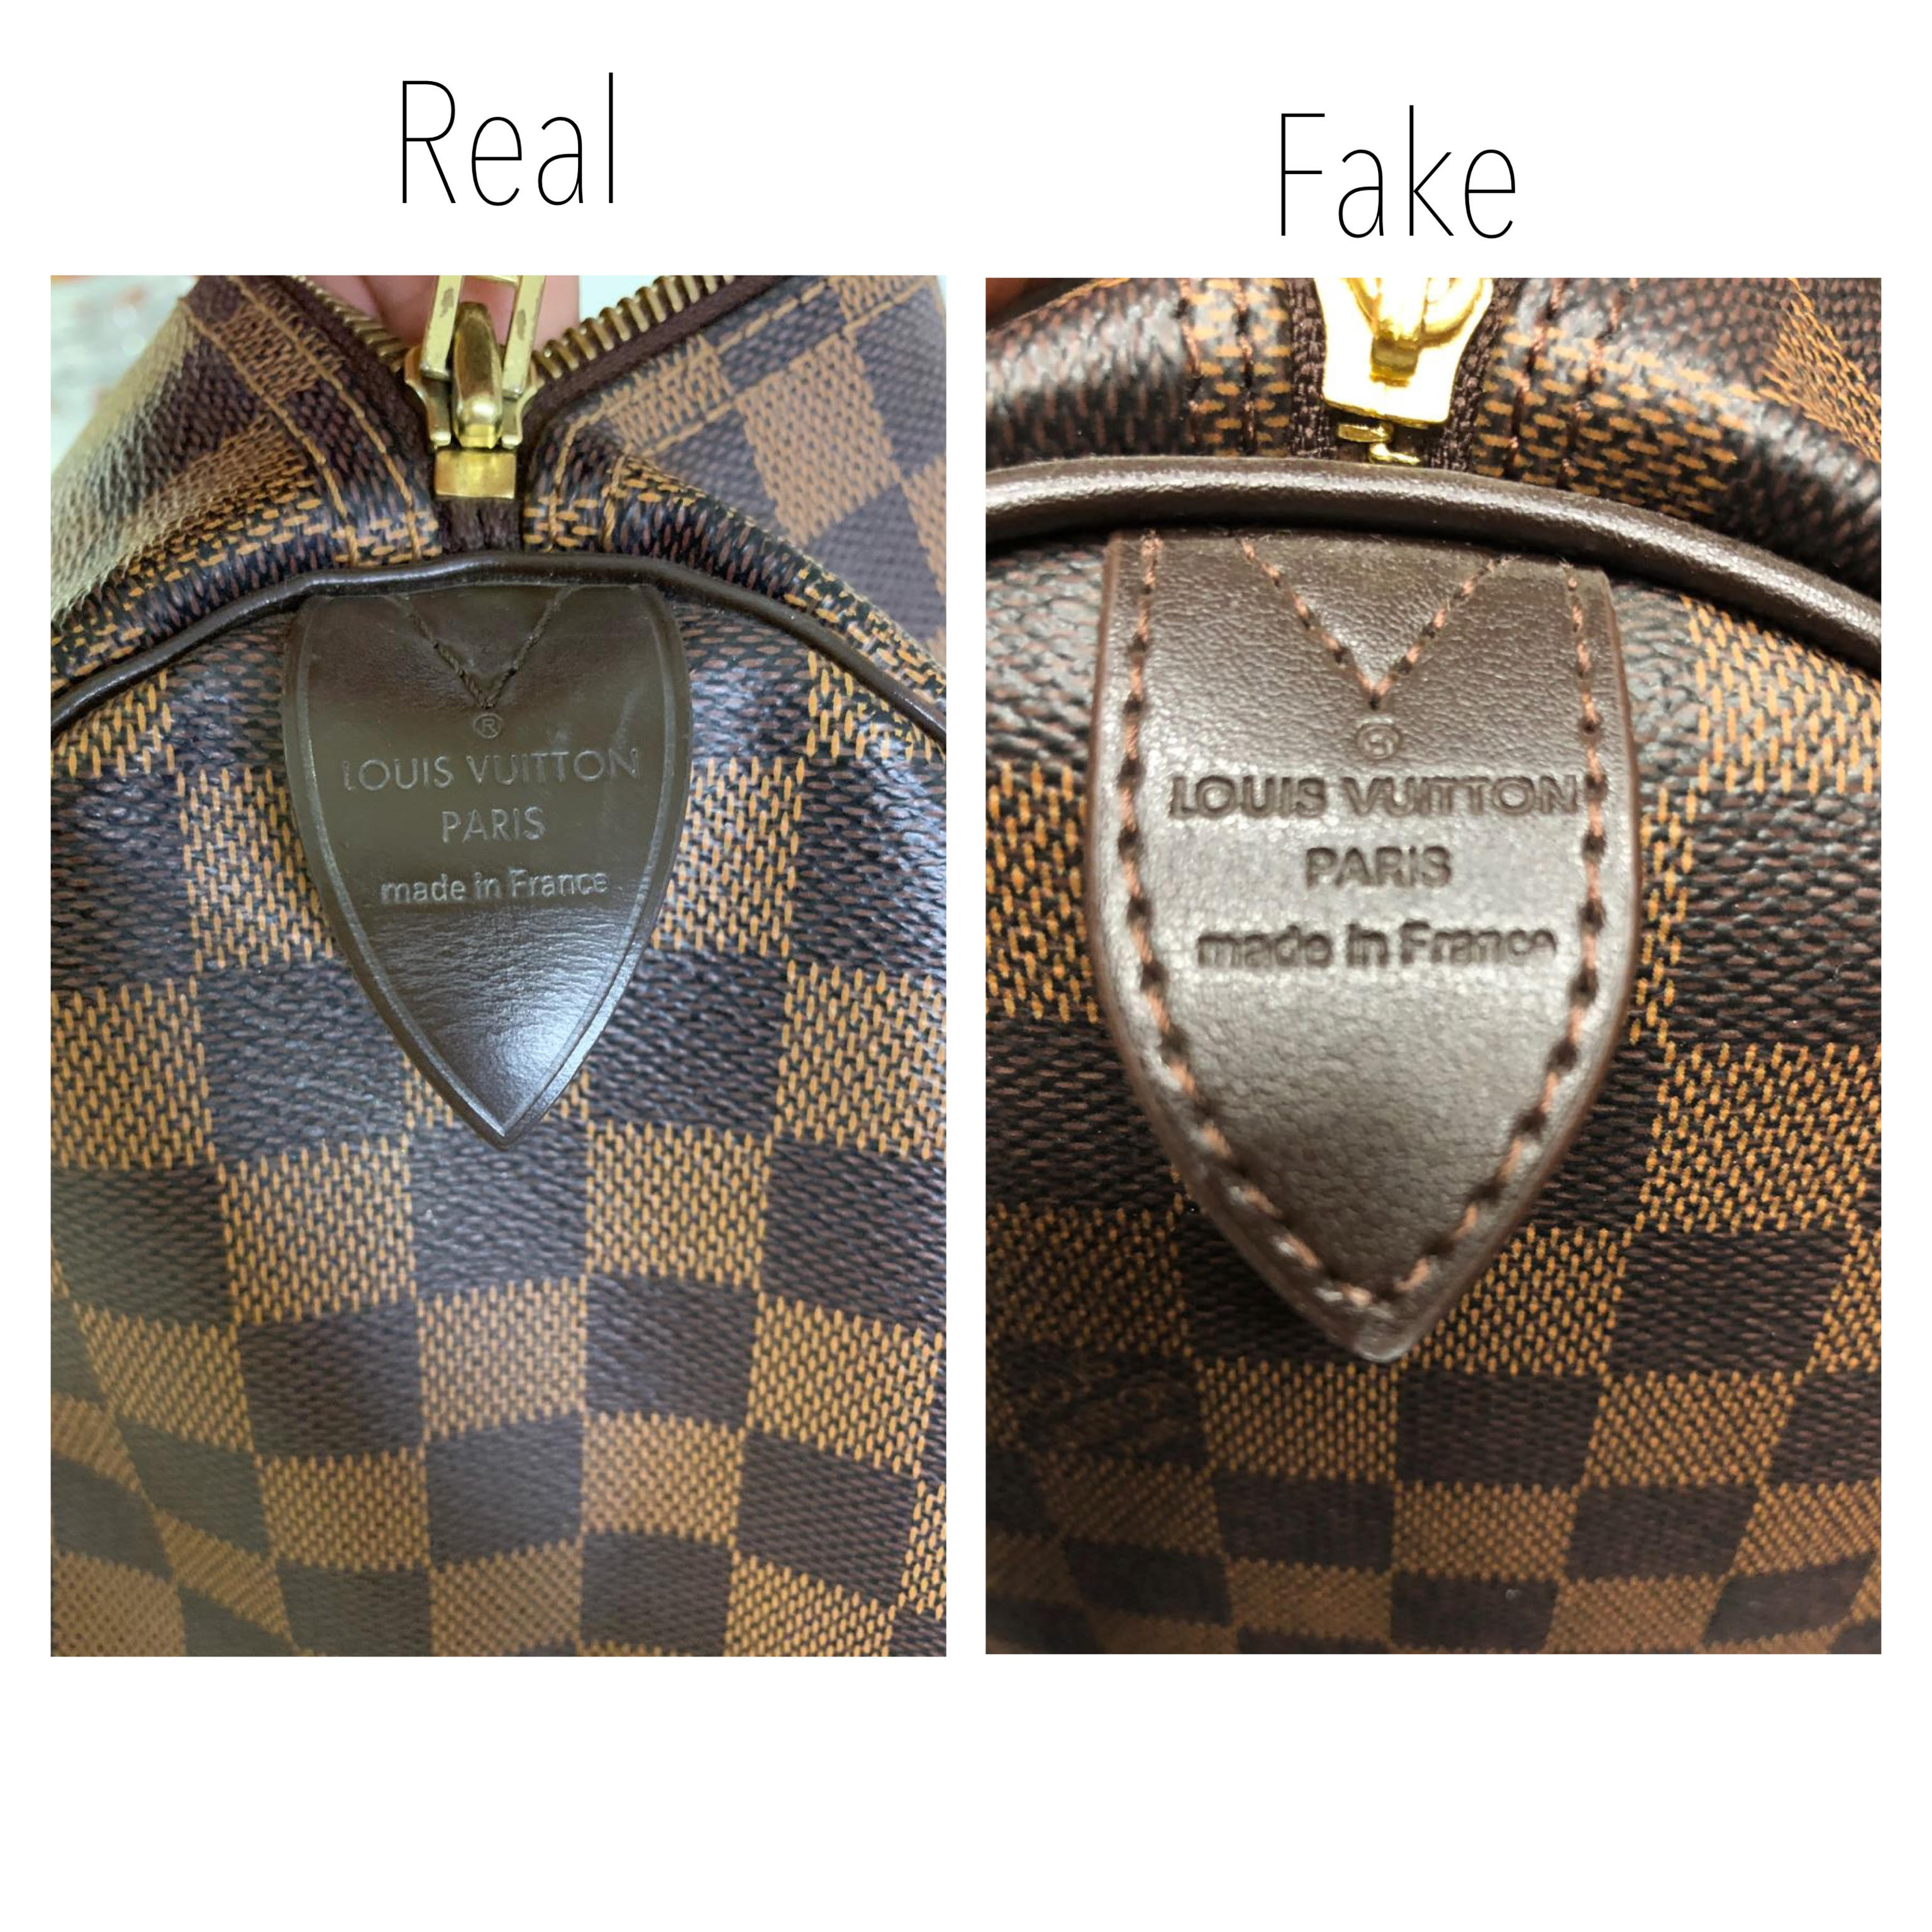 How To Identify Authentic Louis Vuitton Bags Couture Usa >> Louis Vuitton Paris Purse Fake Best Image Home In Ccdbb Org